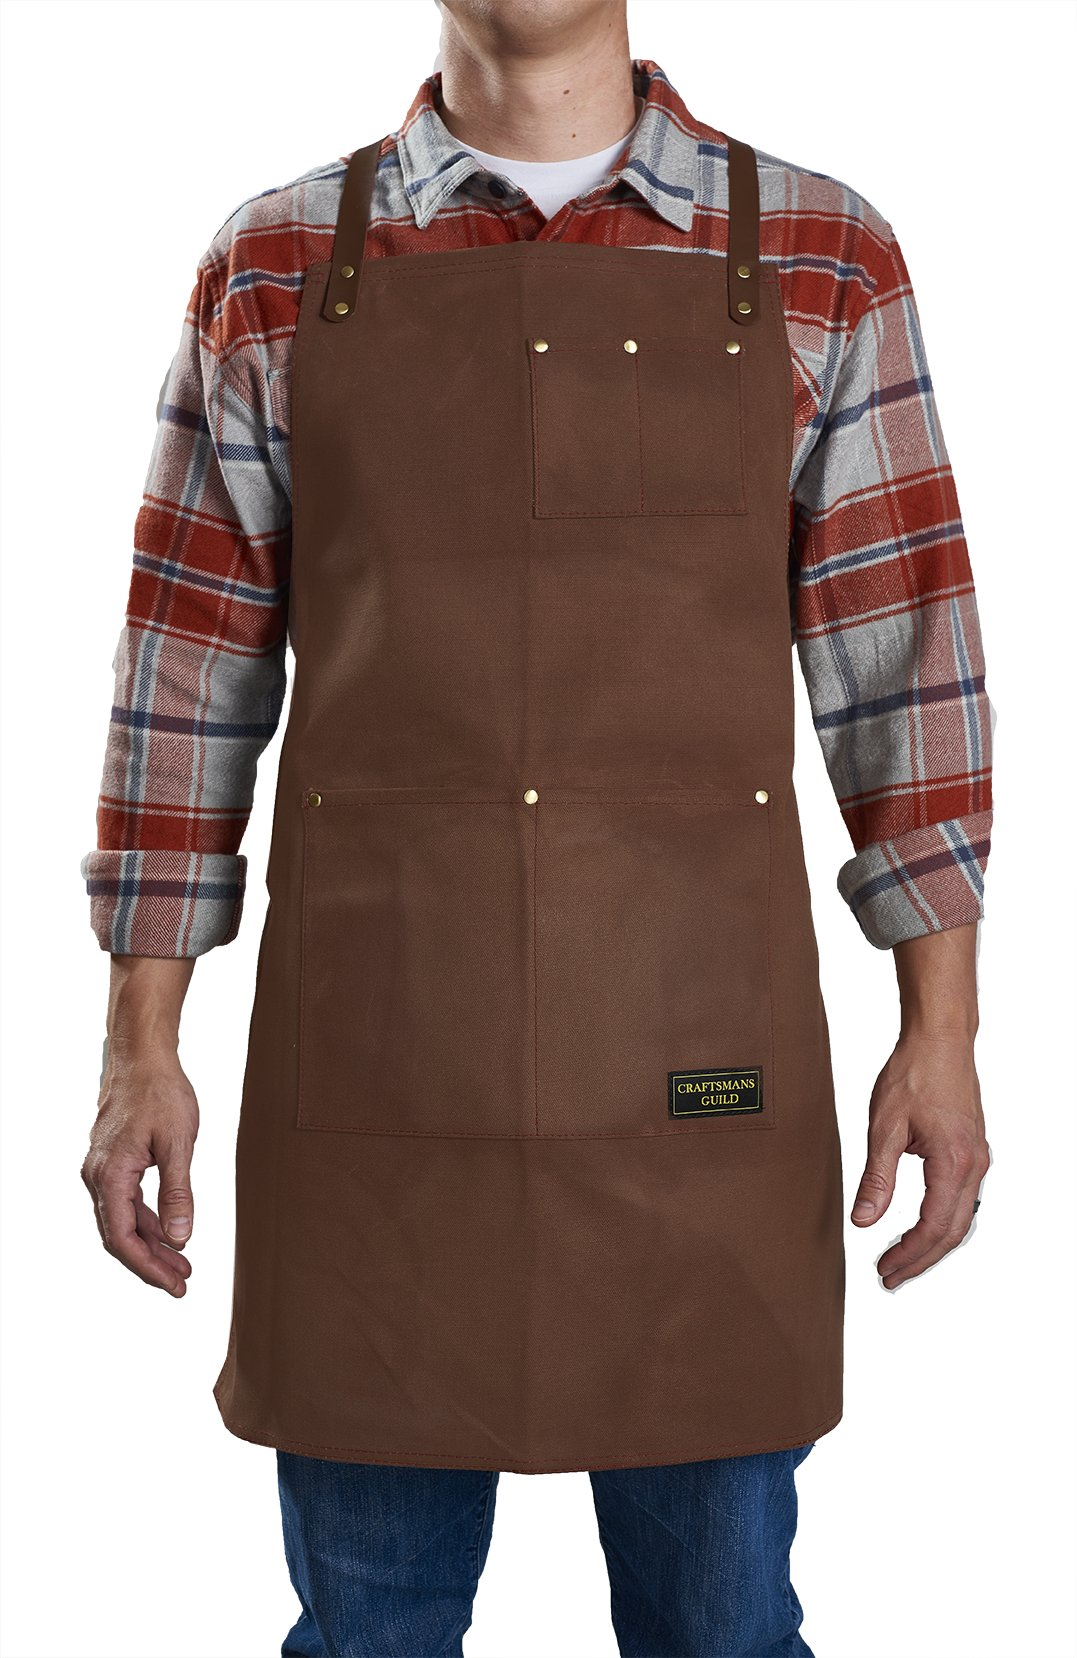 Craftsmans Guild Waxed Canvas Heavy Duty Apron Leather Straps Utility Tool BBQ Cooking Chefs Cooks Shop Woodworking for Men & Women